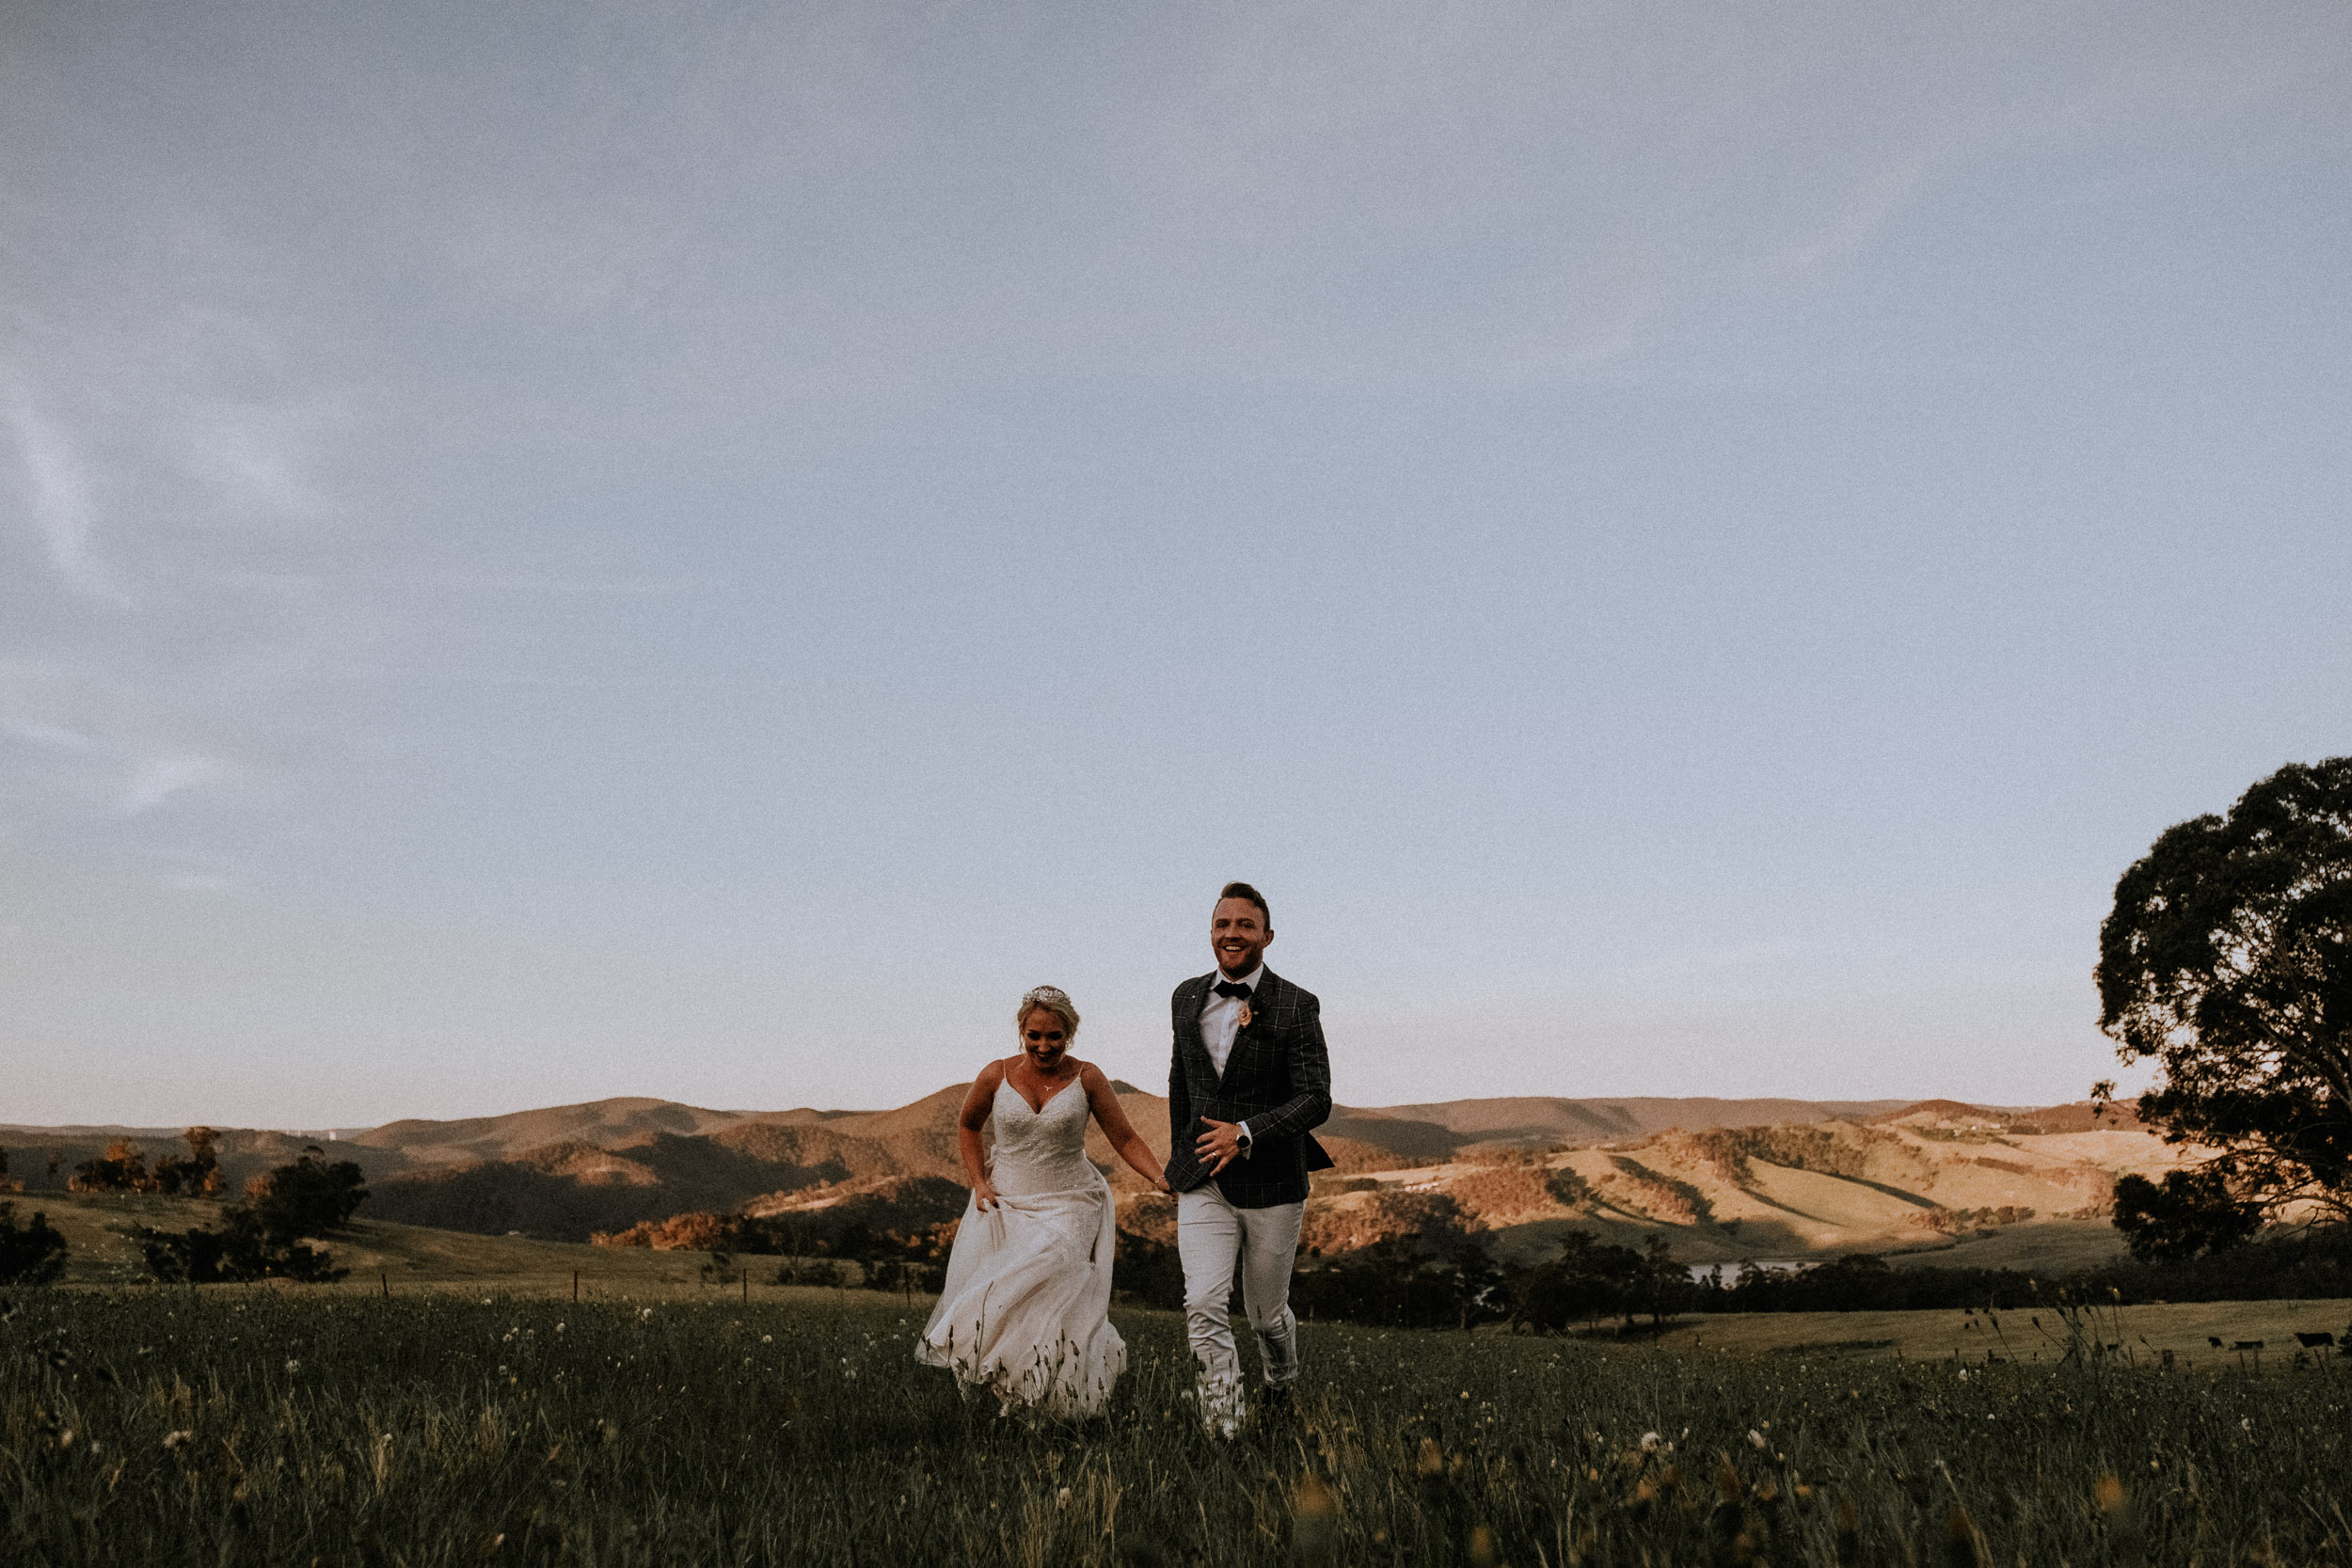 A&A_elopement wedding photography_kings & thieves_blog (28 of 40).jpg